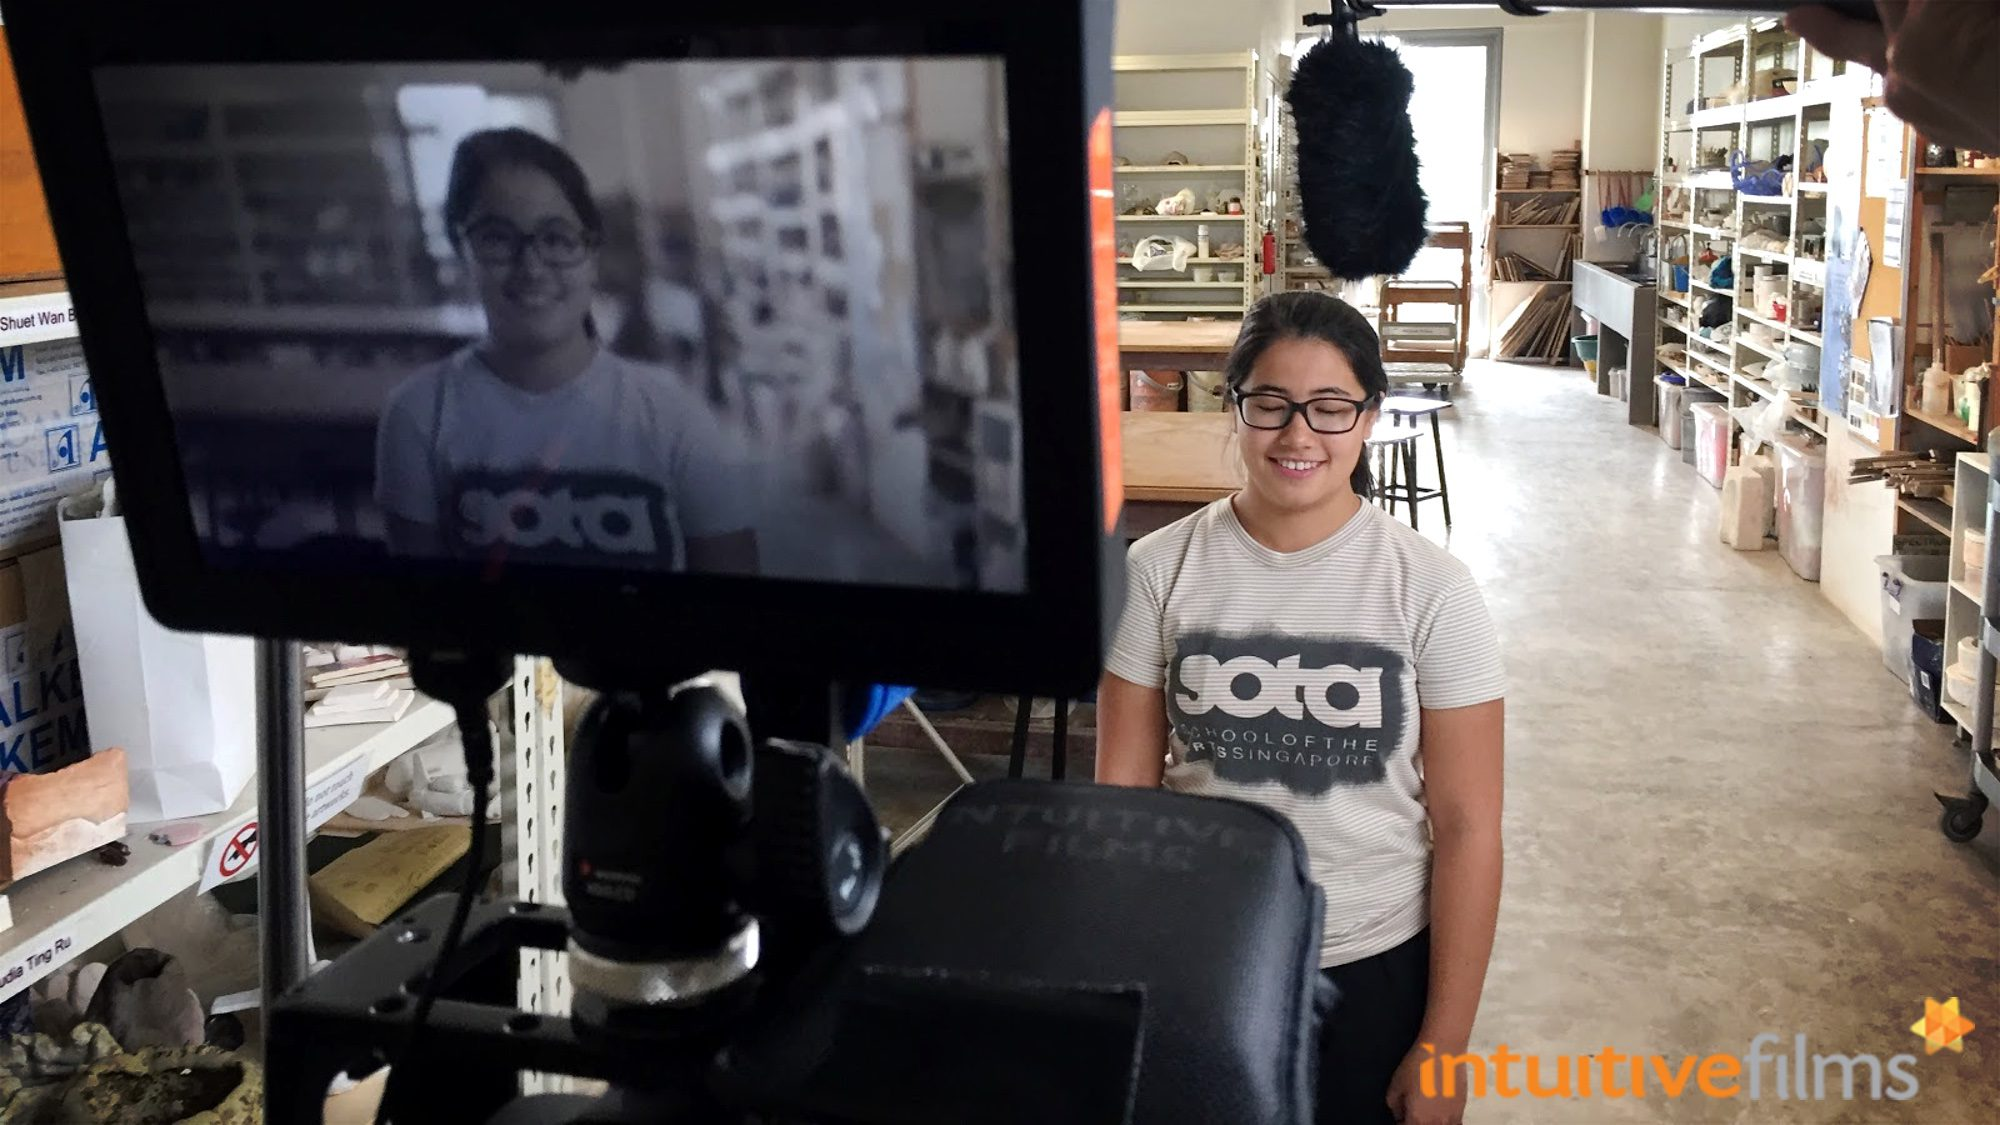 Lights, Camera... Action! Over at one of SOTA's ceramics studio, with one of the students roped in for the video production.